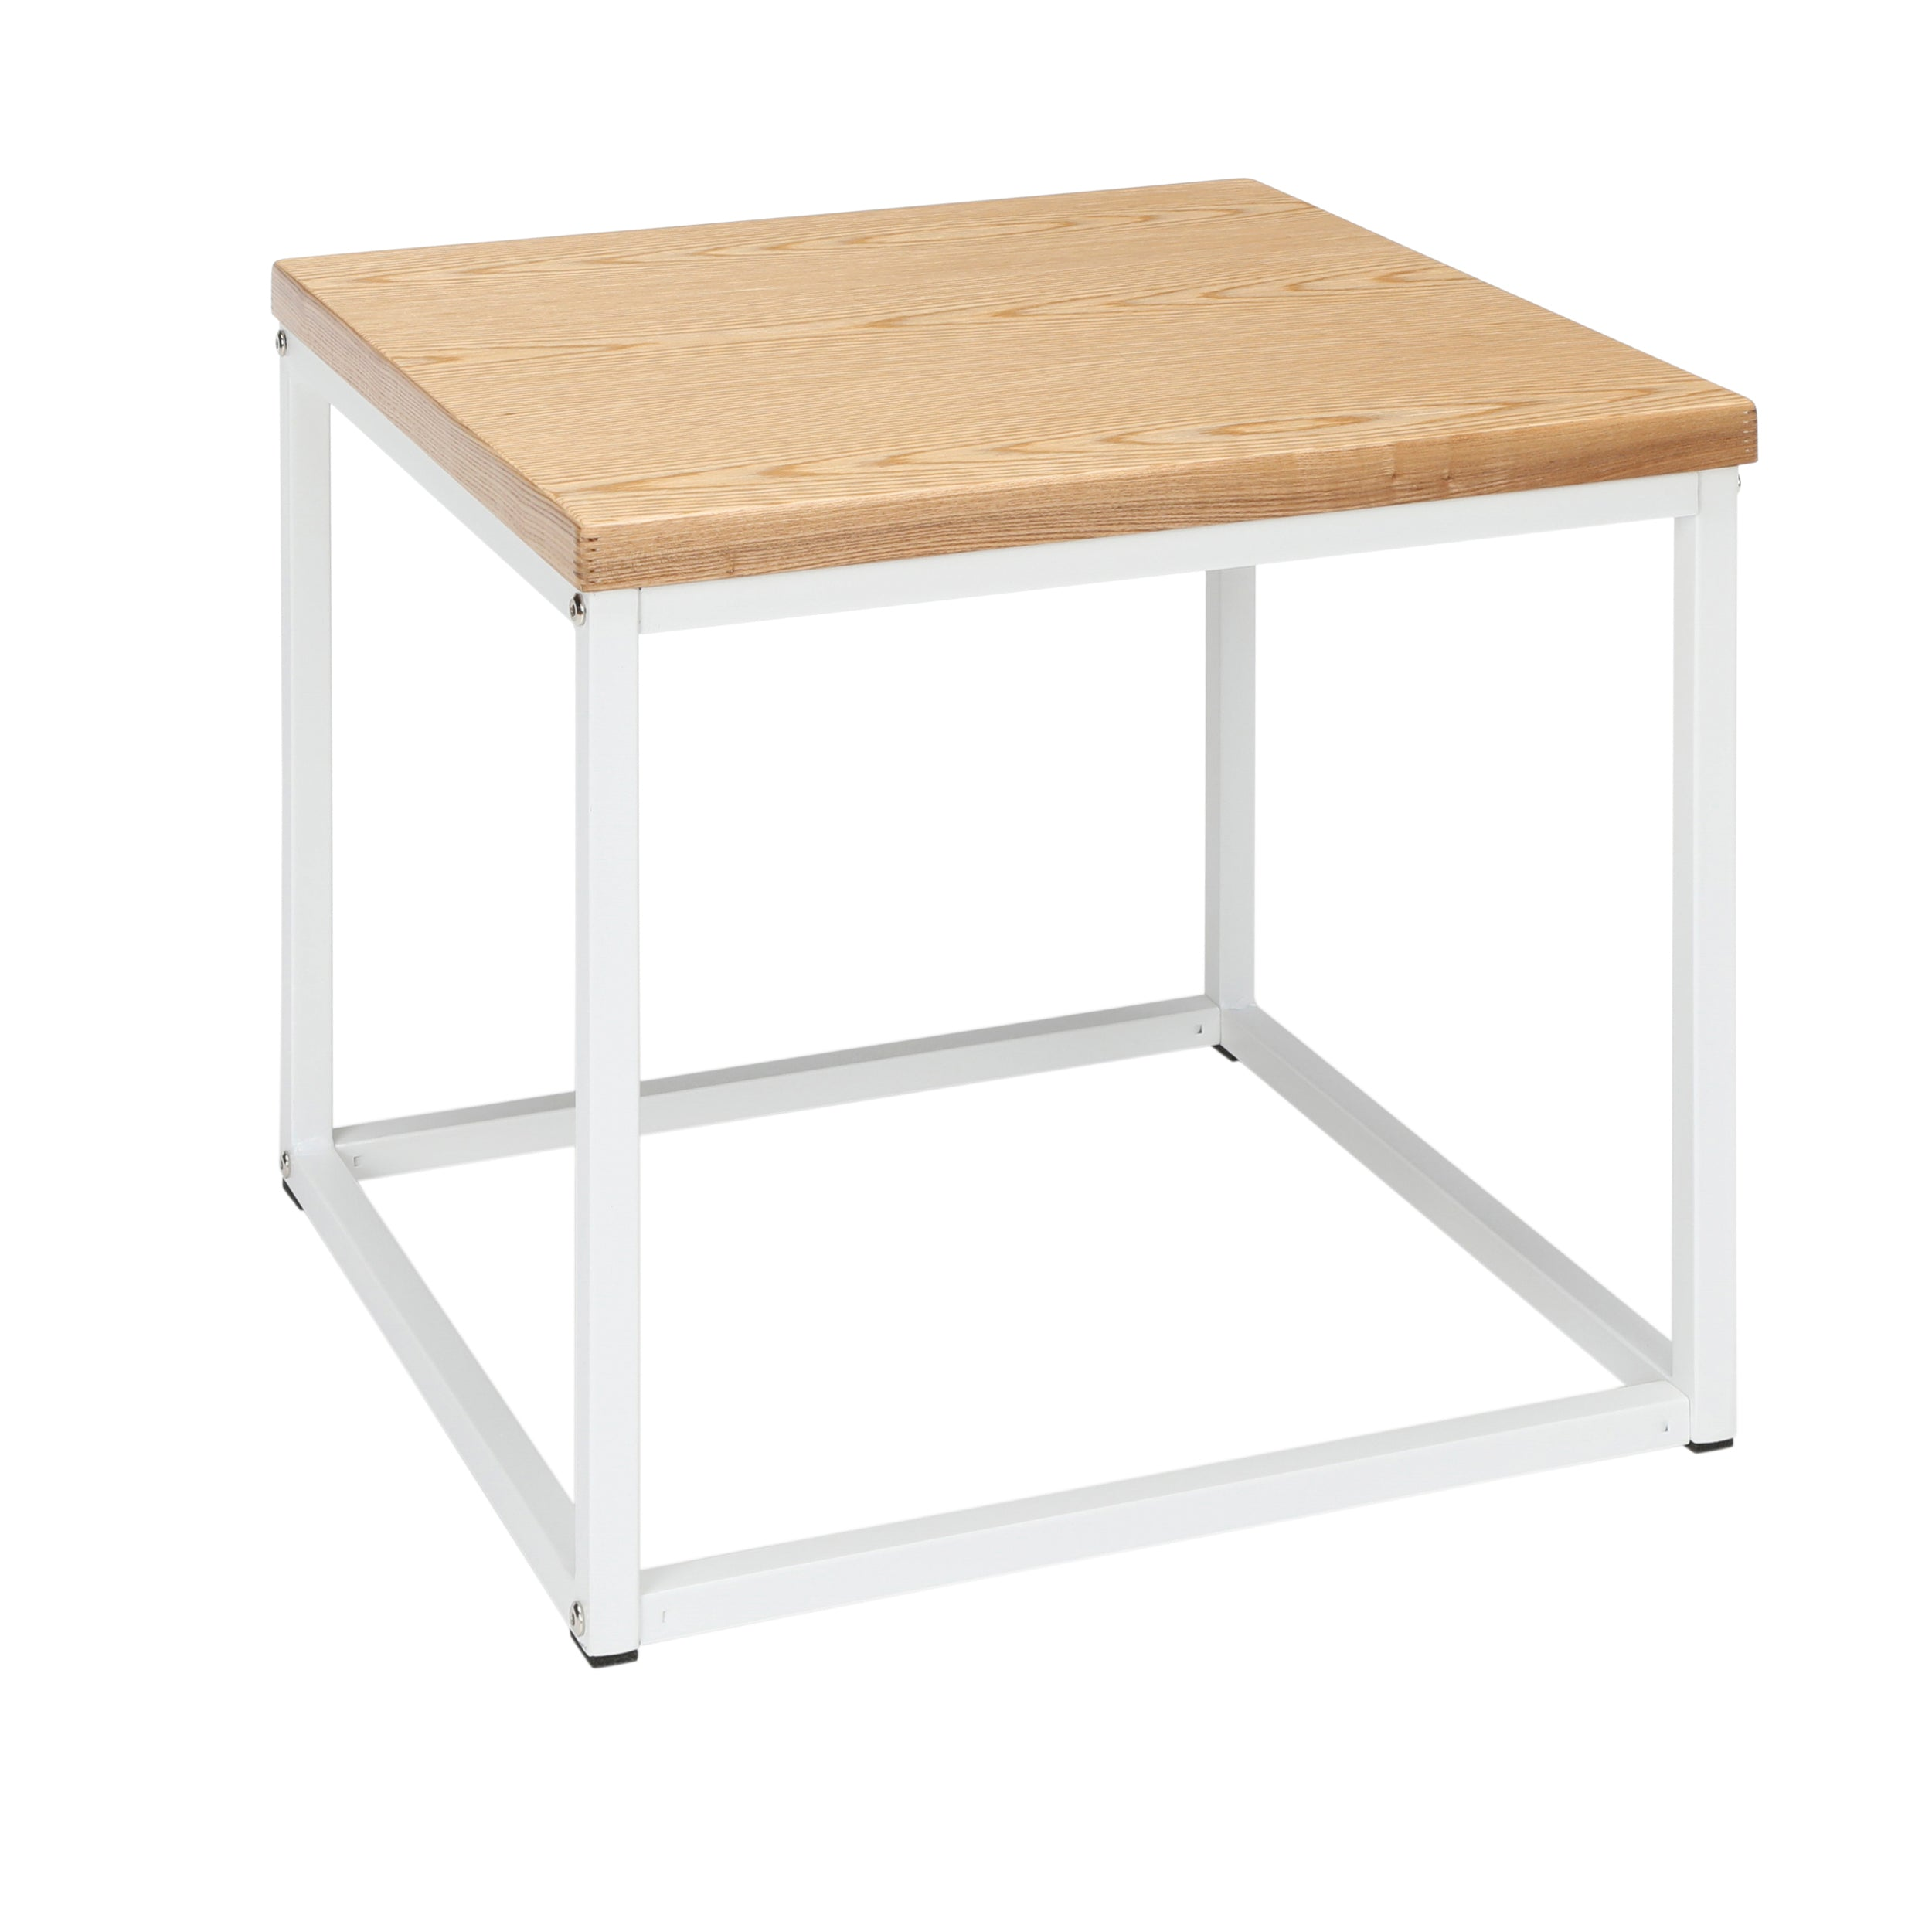 Industrial Modern Wood Top/Metal Frame Side Table-White/Natural